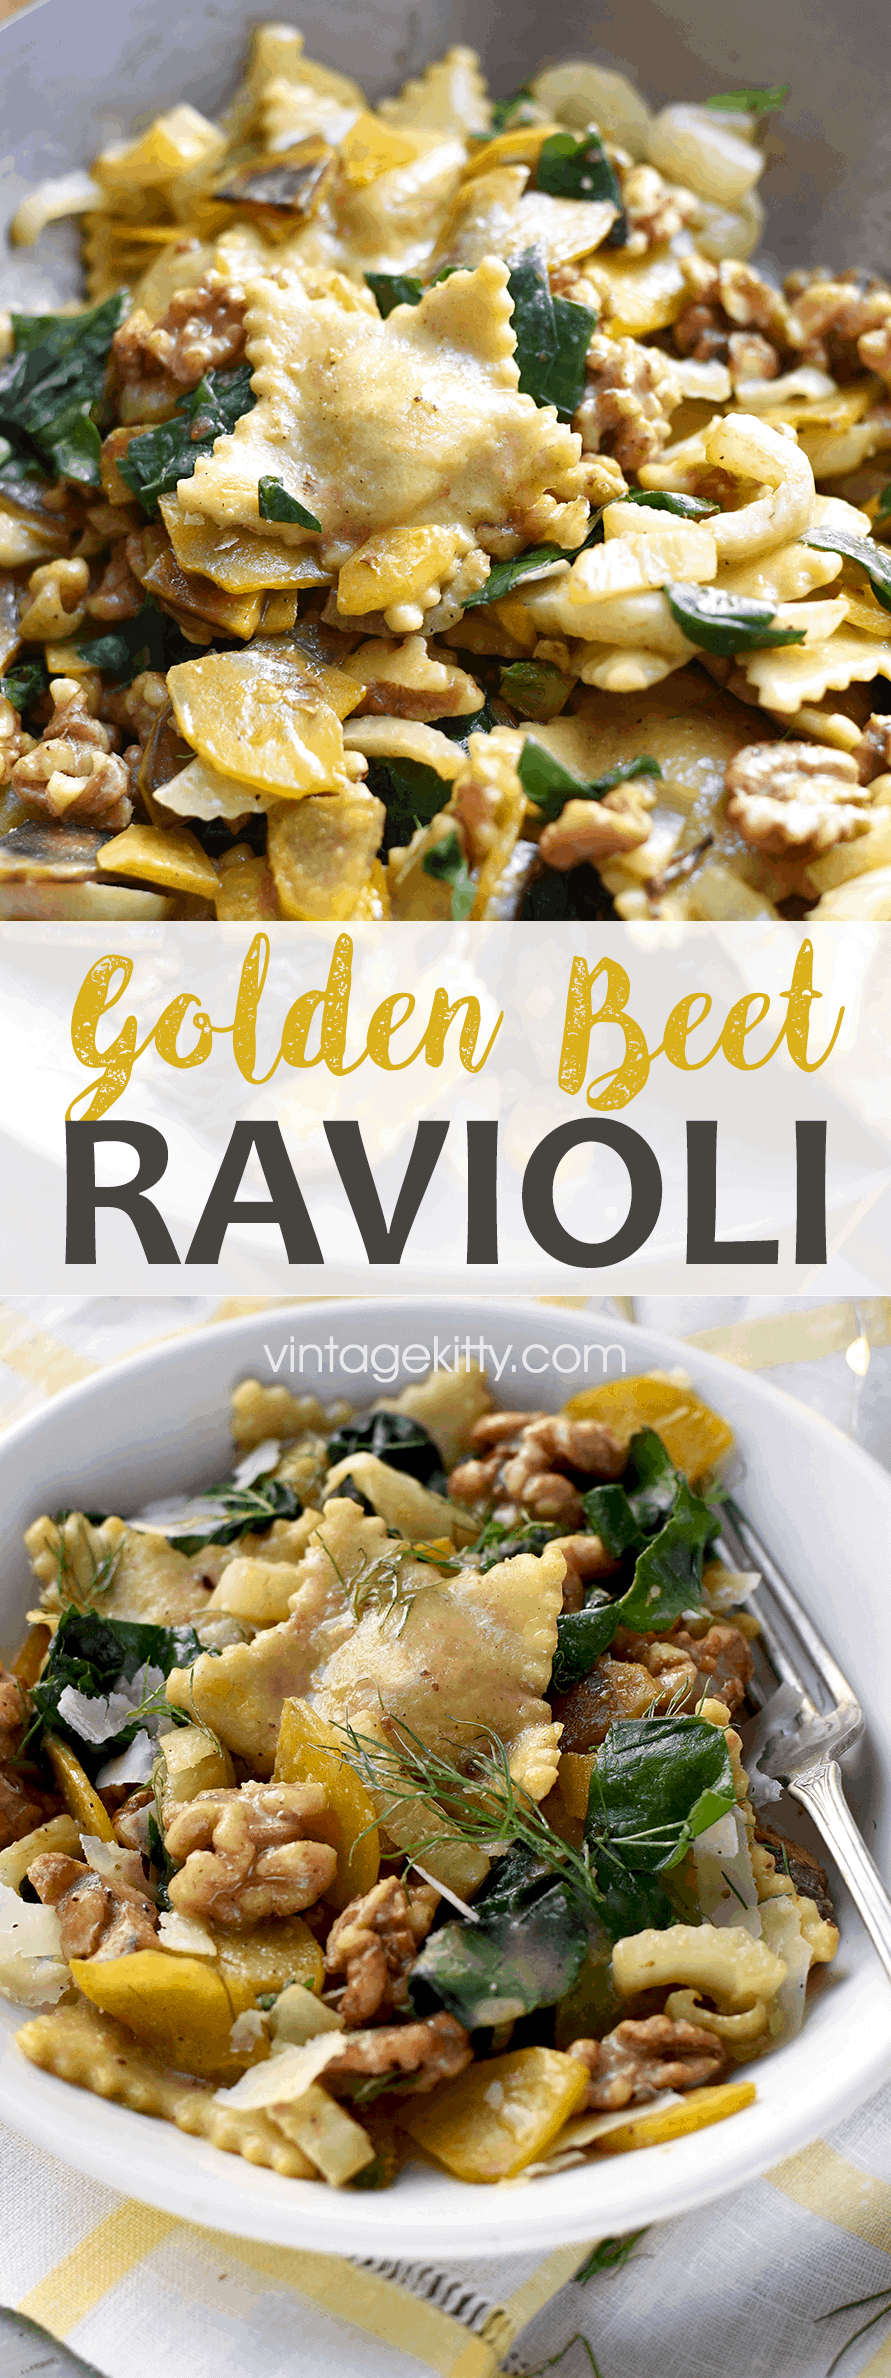 You'll love this homemade beet ravioli in brown butter! It's a stunning dish that's suitable for weeknights or your holiday dinner table. So many flavors! A simple brown butter orange sauce, fennel, walnuts and beet greens combine to make a meal you won't forget! #ravioli #beet #vegetarian #christmasrecipes #pastarecipe